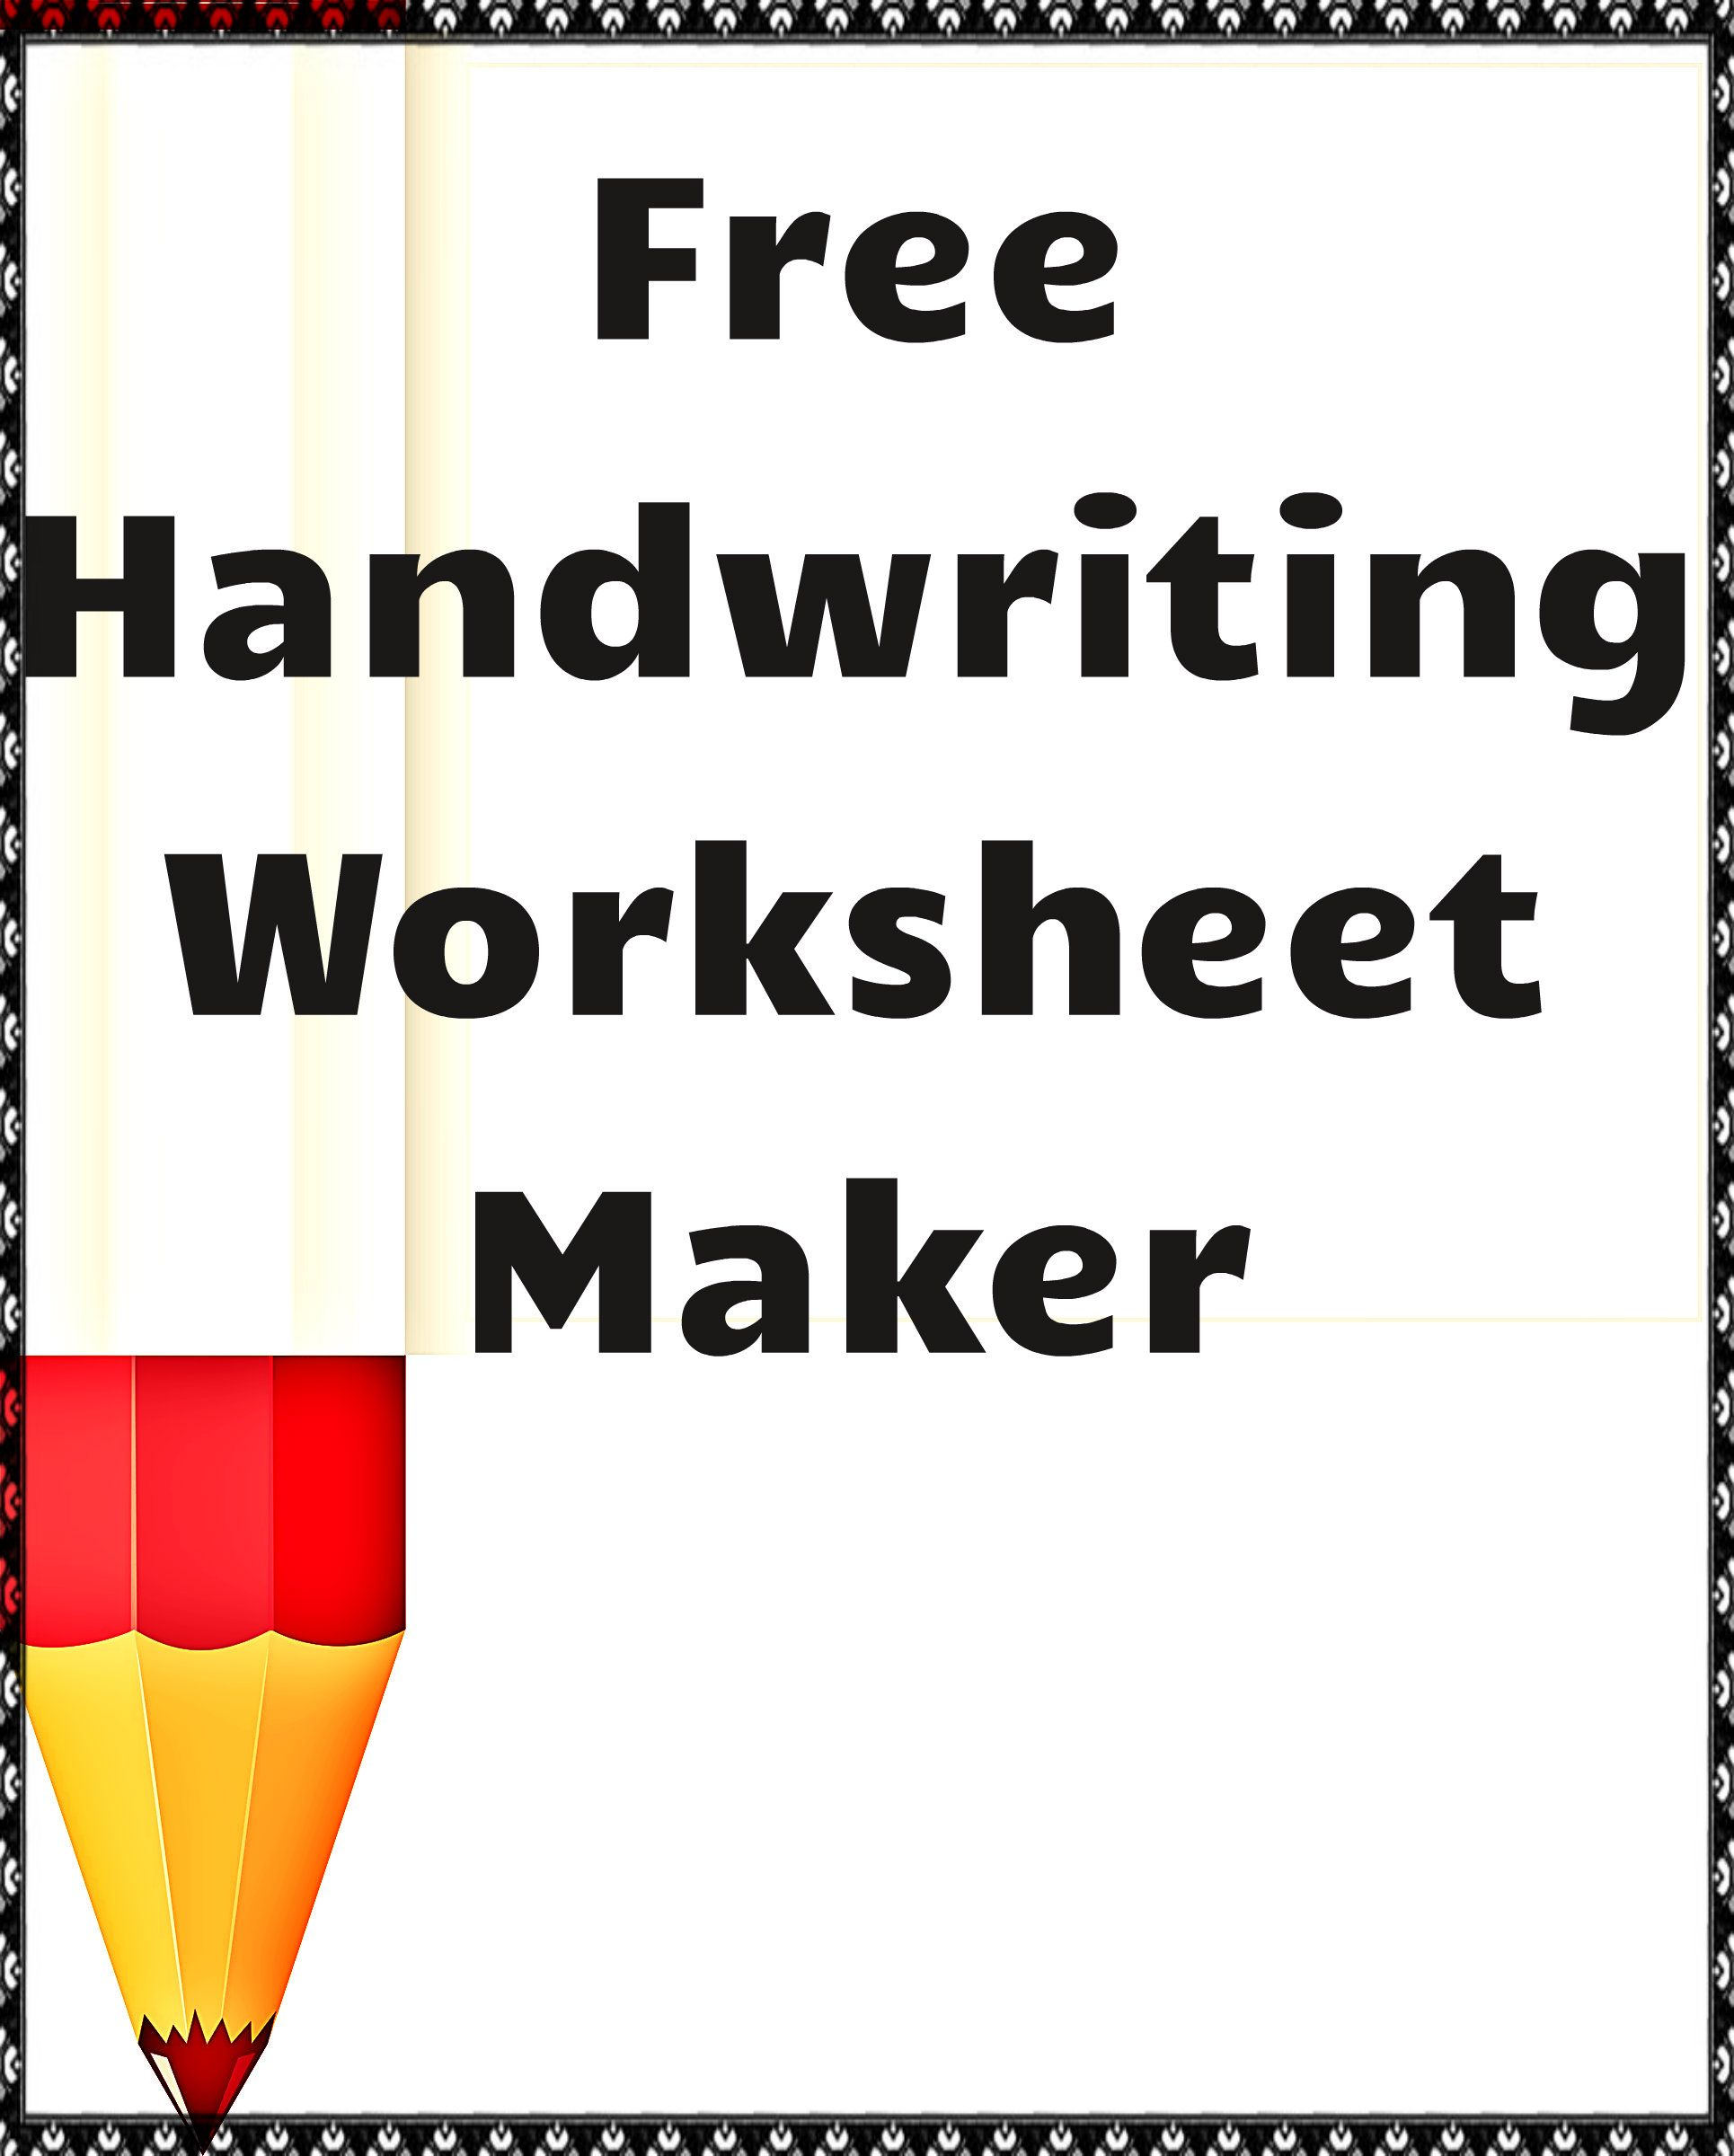 worksheet Free Worksheet Maker free handwriting worksheet maker kindergartenklub com pinterest maker